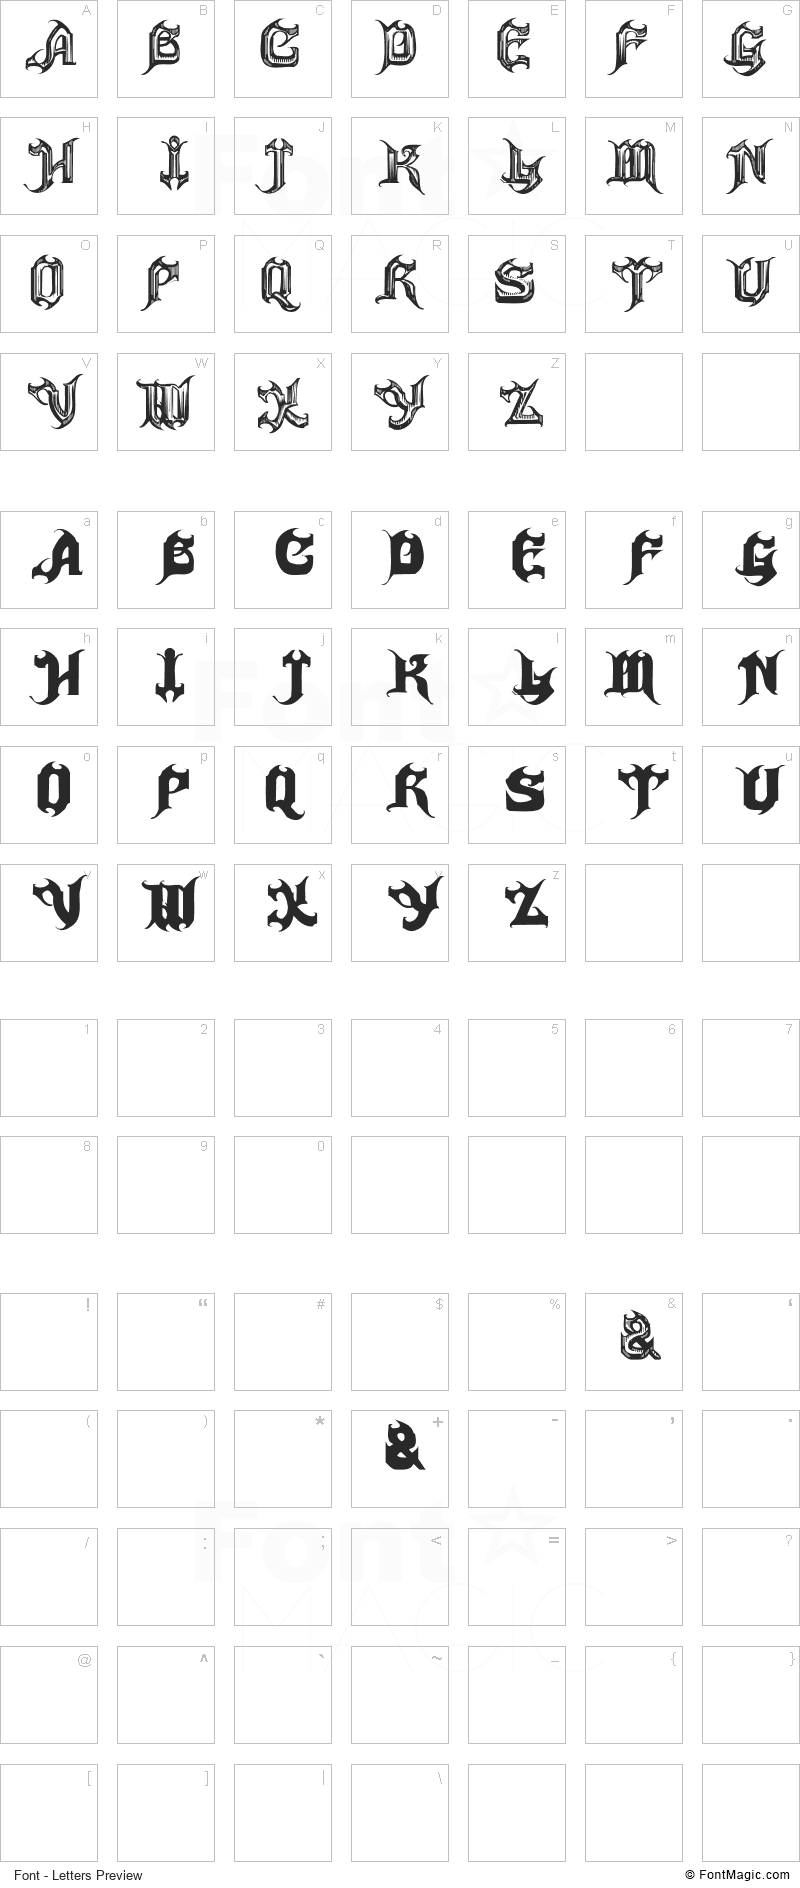 Haunted Font - All Latters Preview Chart